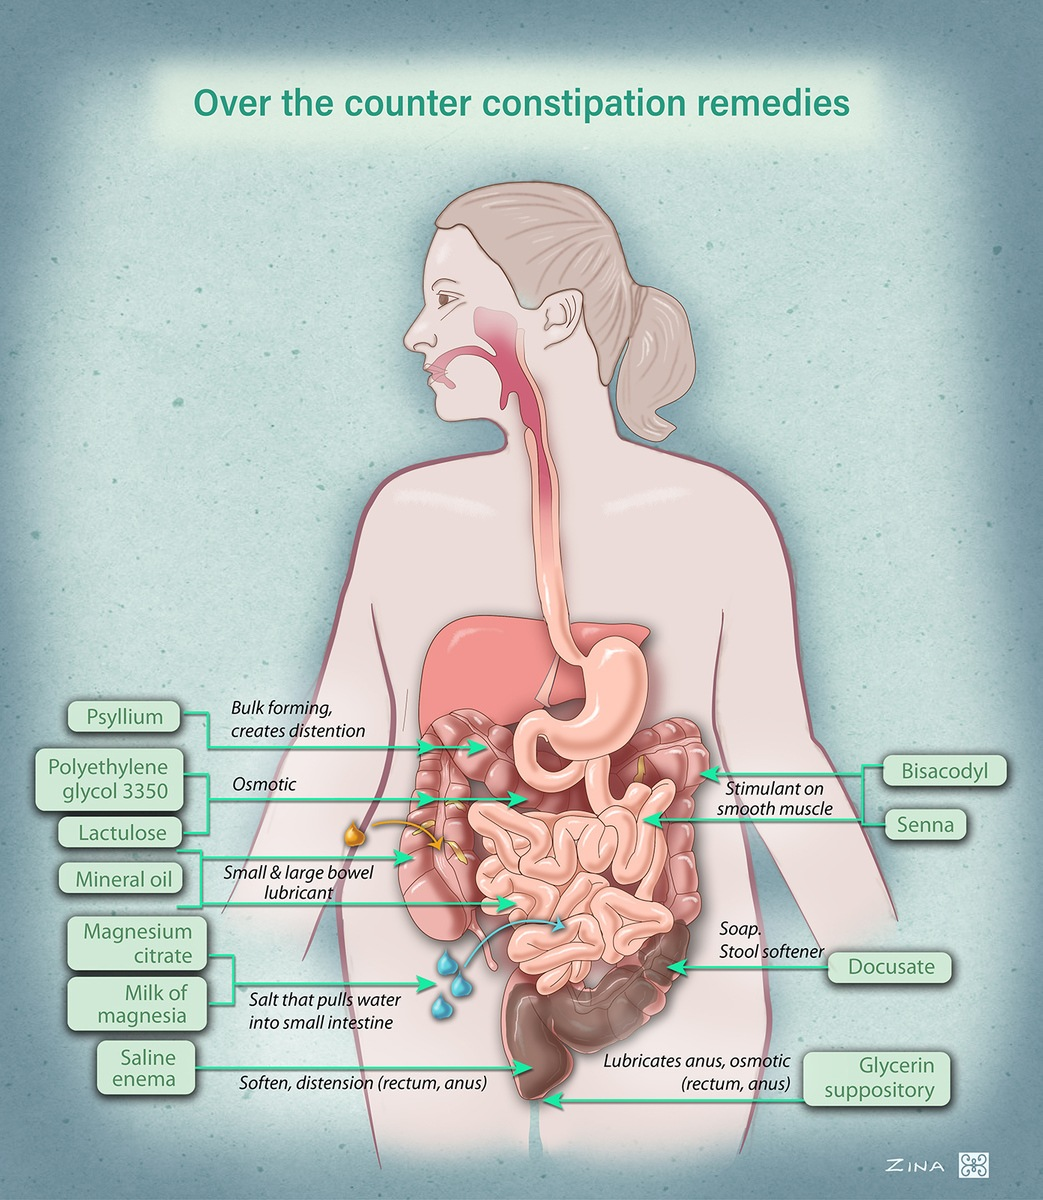 Over the Counter Medications for Constipation